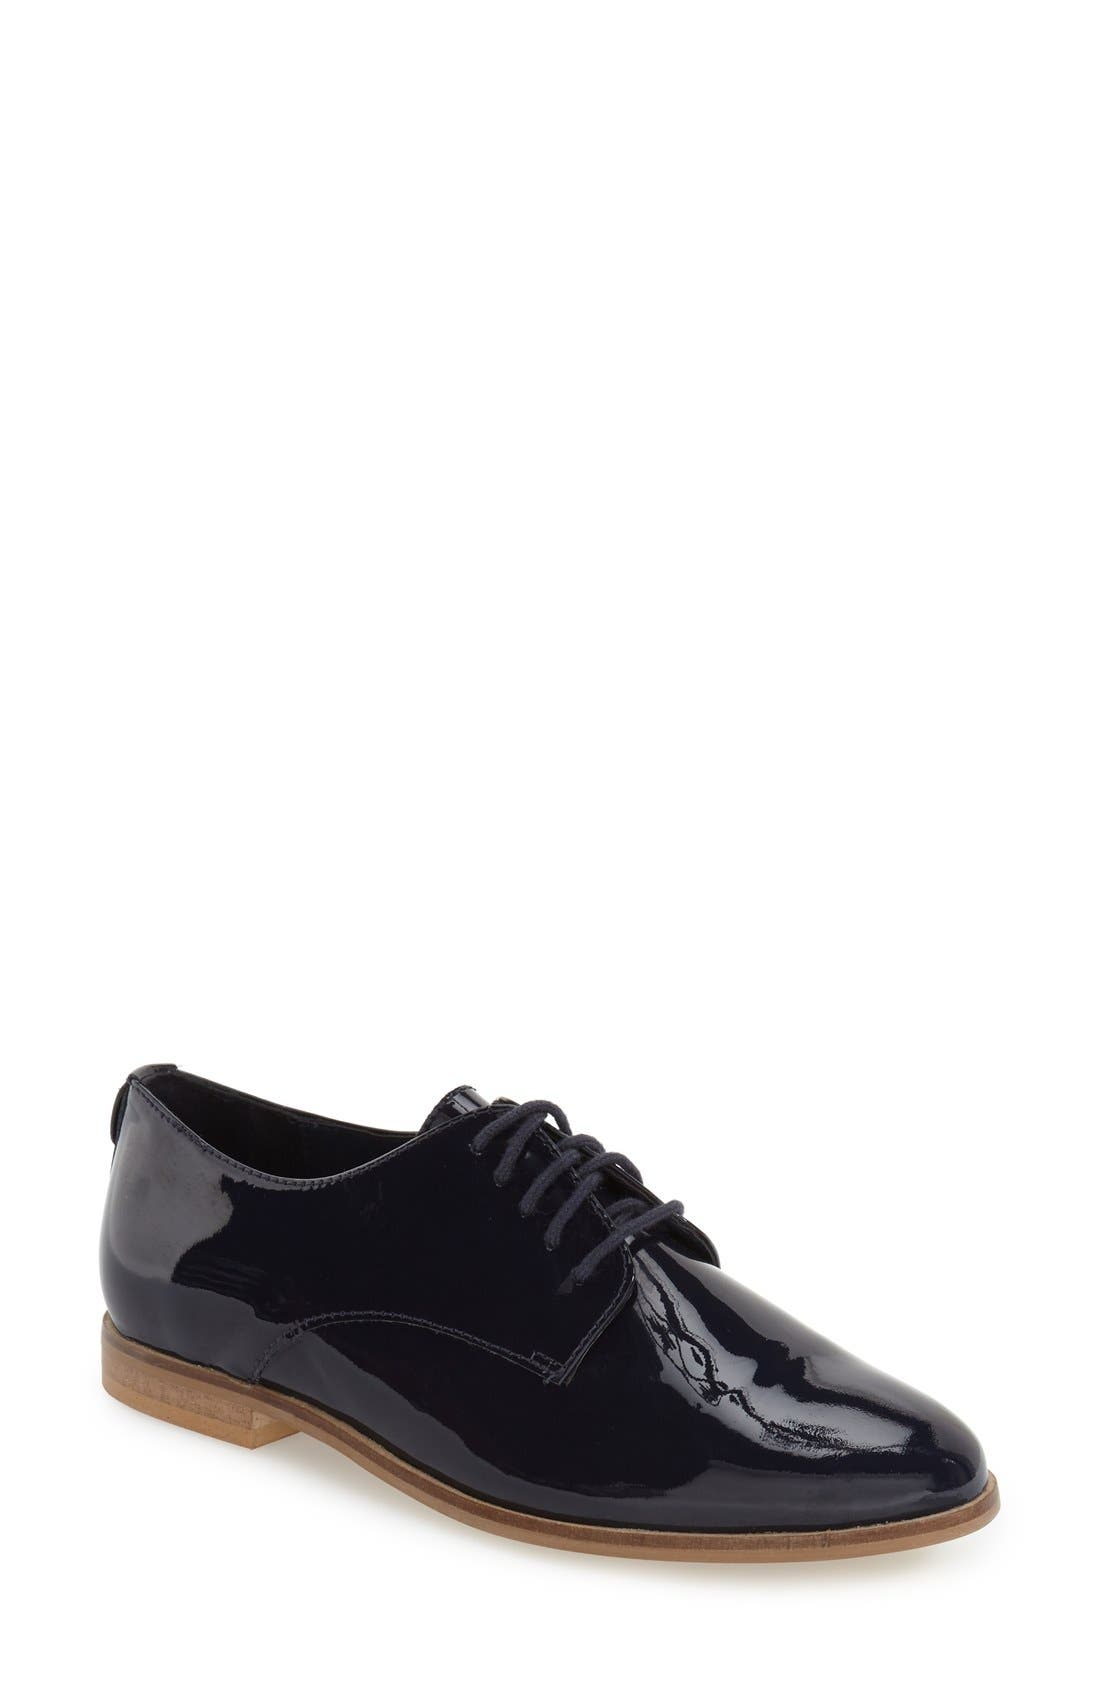 'Flossy' Patent Leather Oxford,                         Main,                         color, Navy Patent Leather